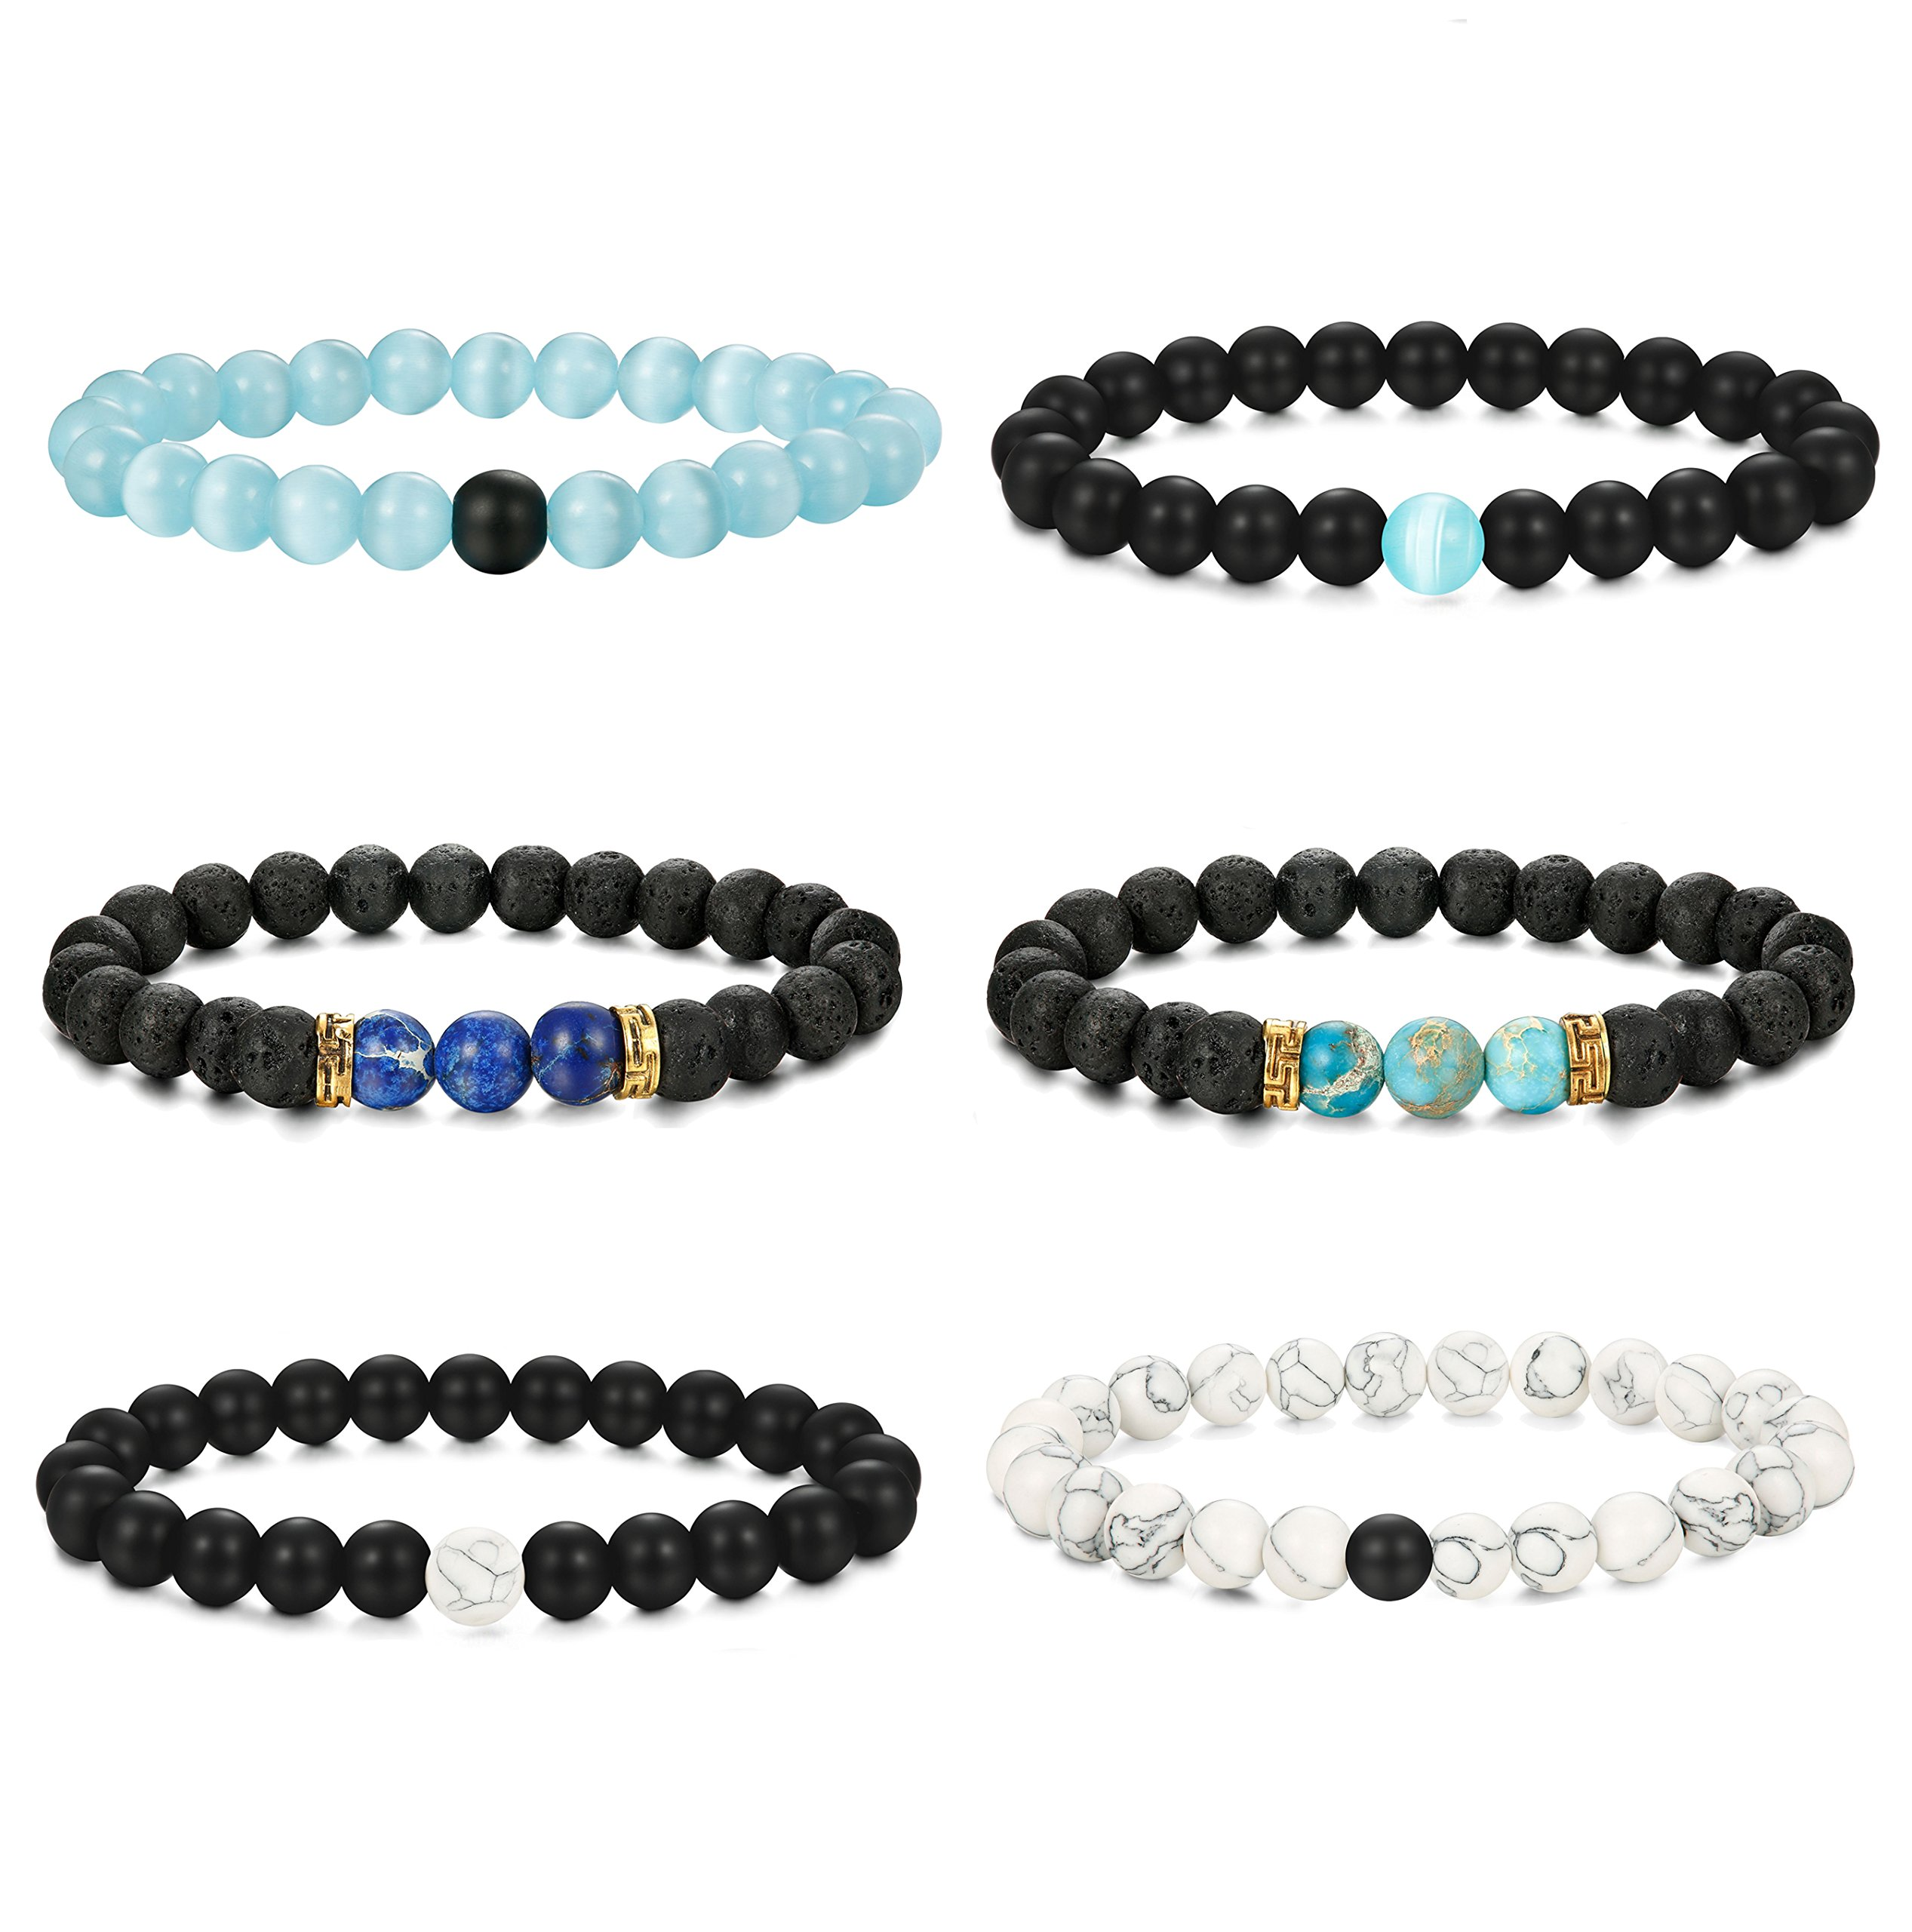 FUNRUN JEWELRY 6PCS Bead Bracelets for Men Women Natural Stone Mala Bracelet (E: 6 PCS Style 4) by FUNRUN JEWELRY (Image #1)